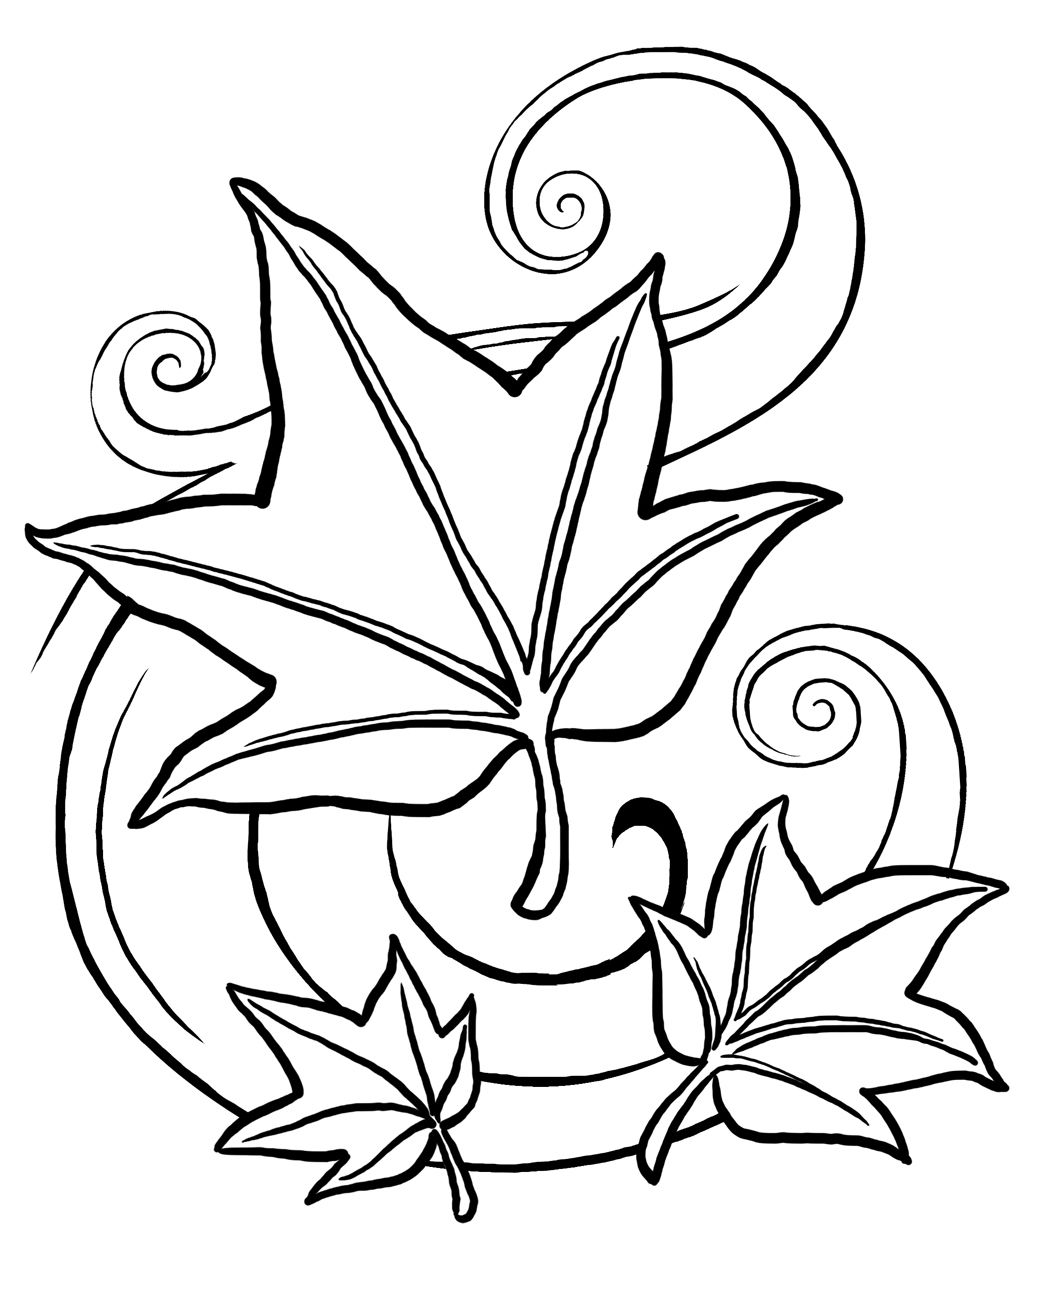 1046x1308 Stunning Printable Leaf Coloring Pages For Kids Pic Single Flower